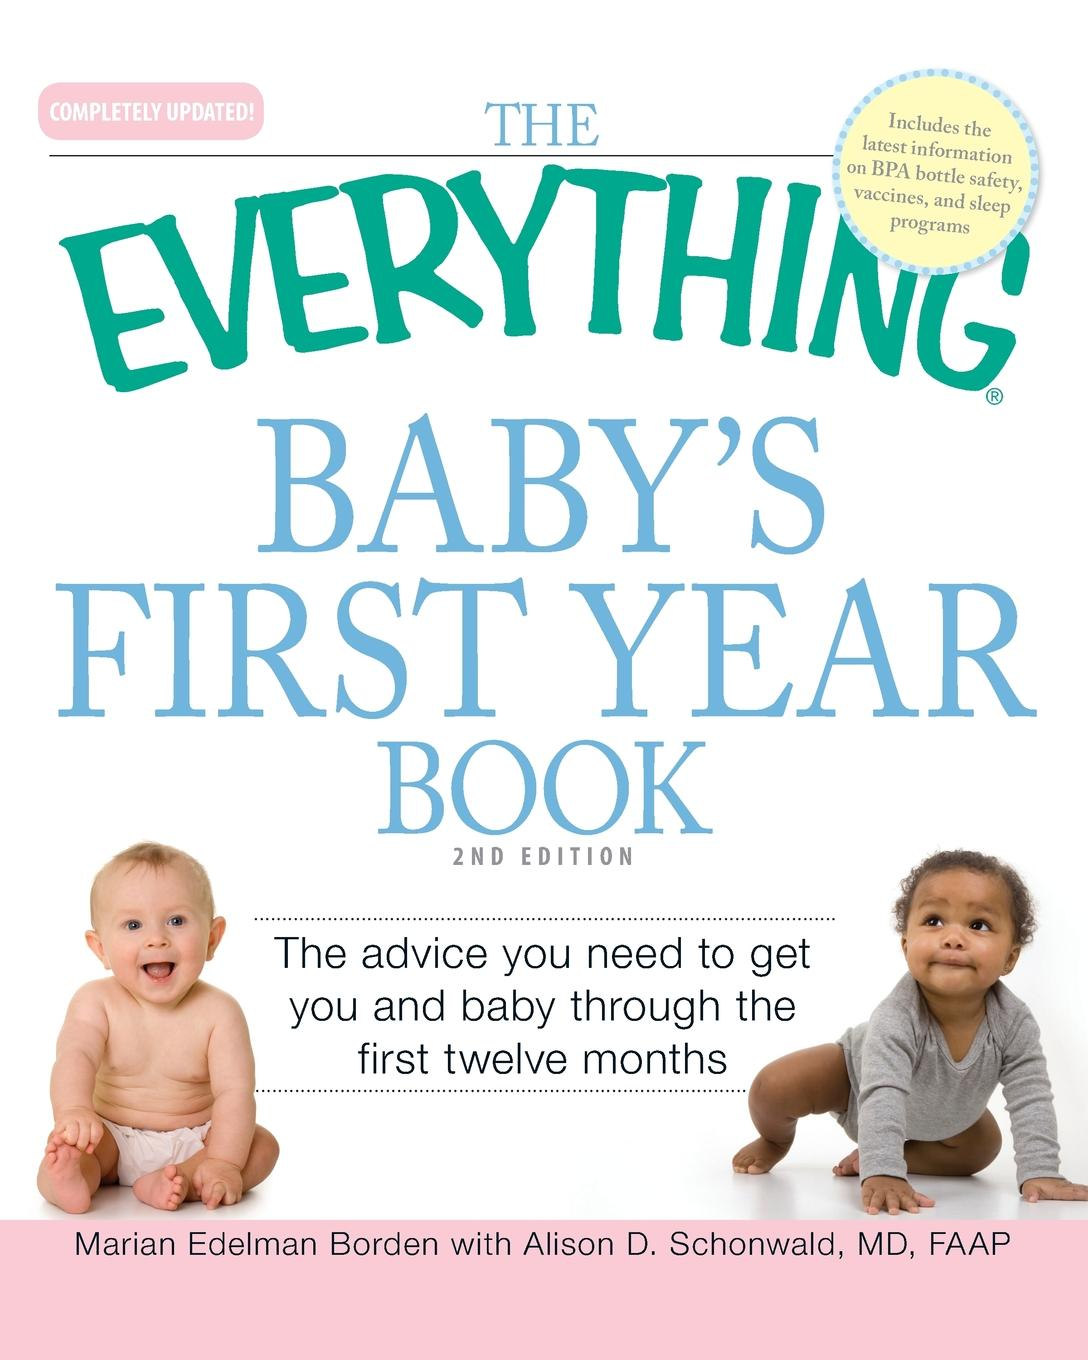 Marian Borden The Everything Baby.s First Year Book. The Advice You Need to Get You and Baby Through the First Twelve Months grow and develop our baby encyclopedia of the first year russian edition book for new parents